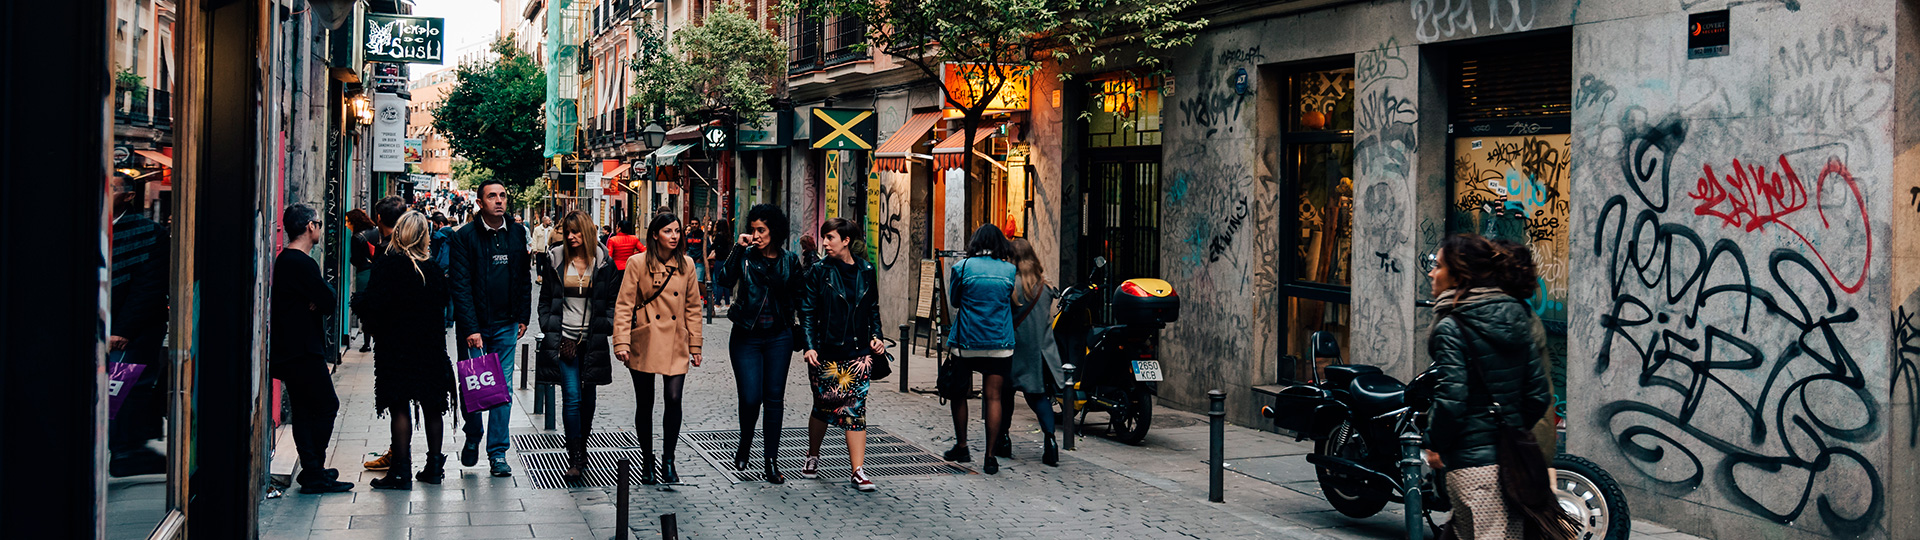 Streets in the Malasaña district of Madrid